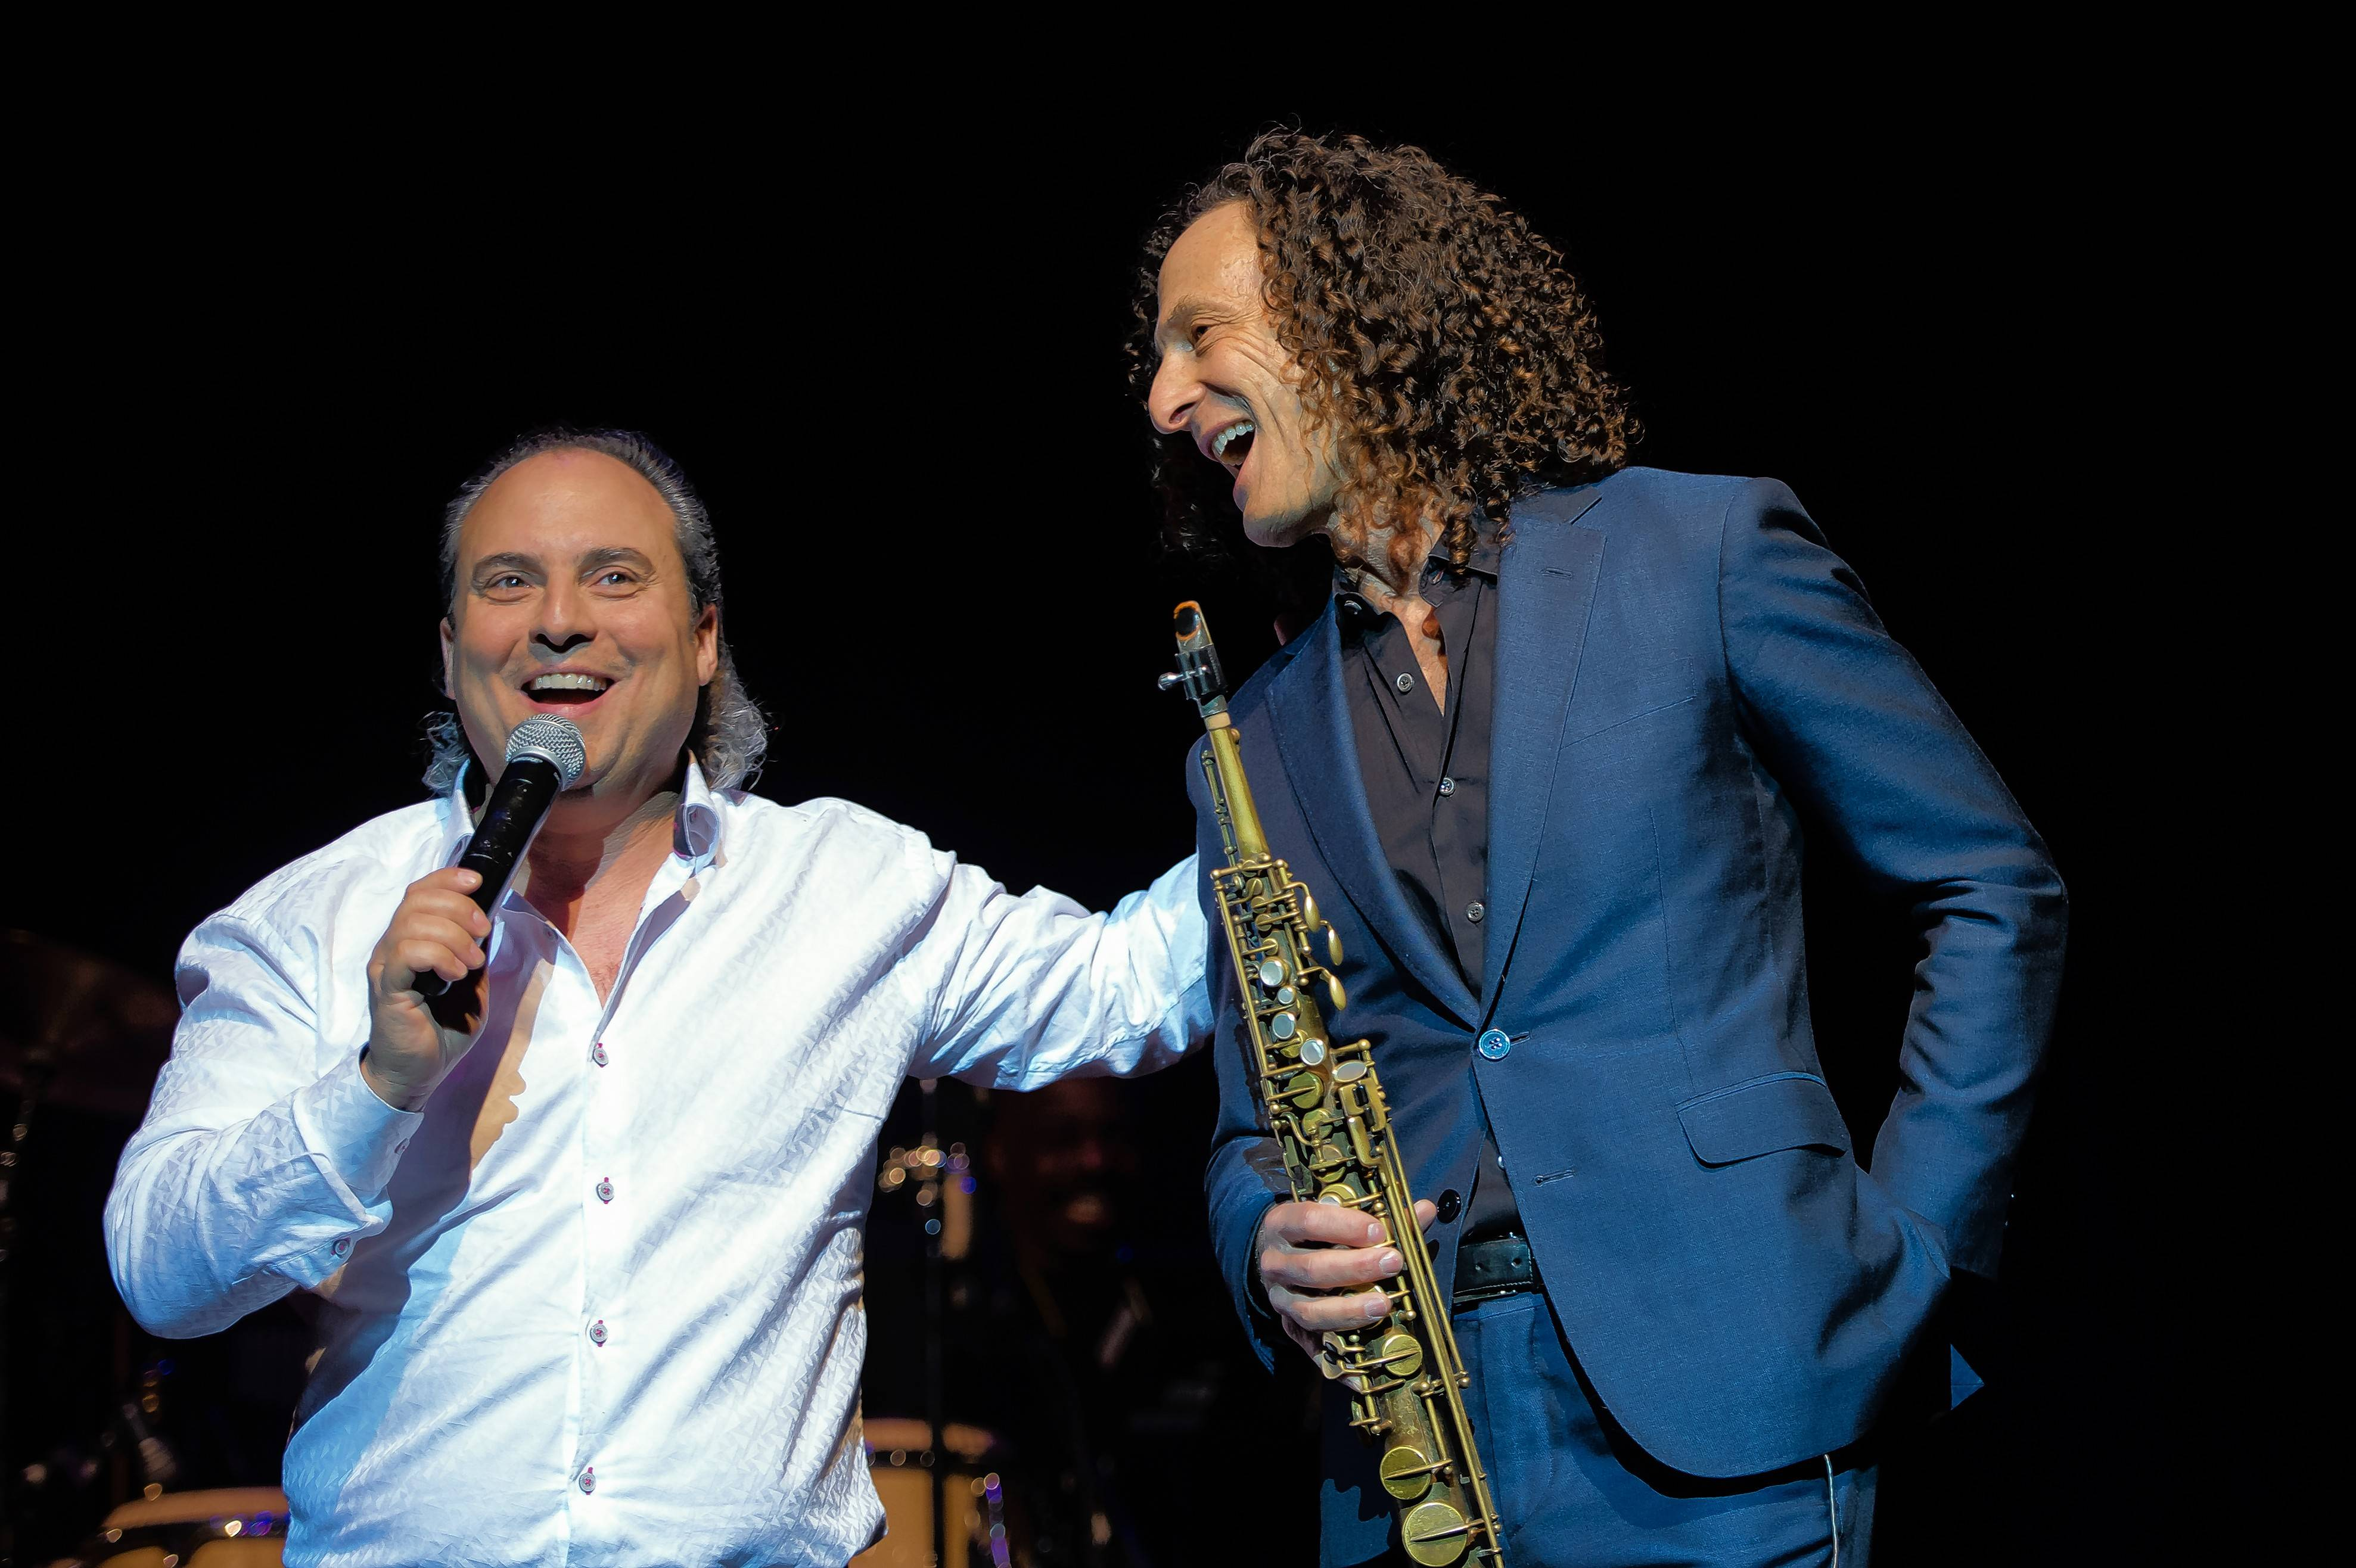 Arcada Theatre owner Ron Onesti, left, introduces Kenny G to the audience before the musician's show last week.